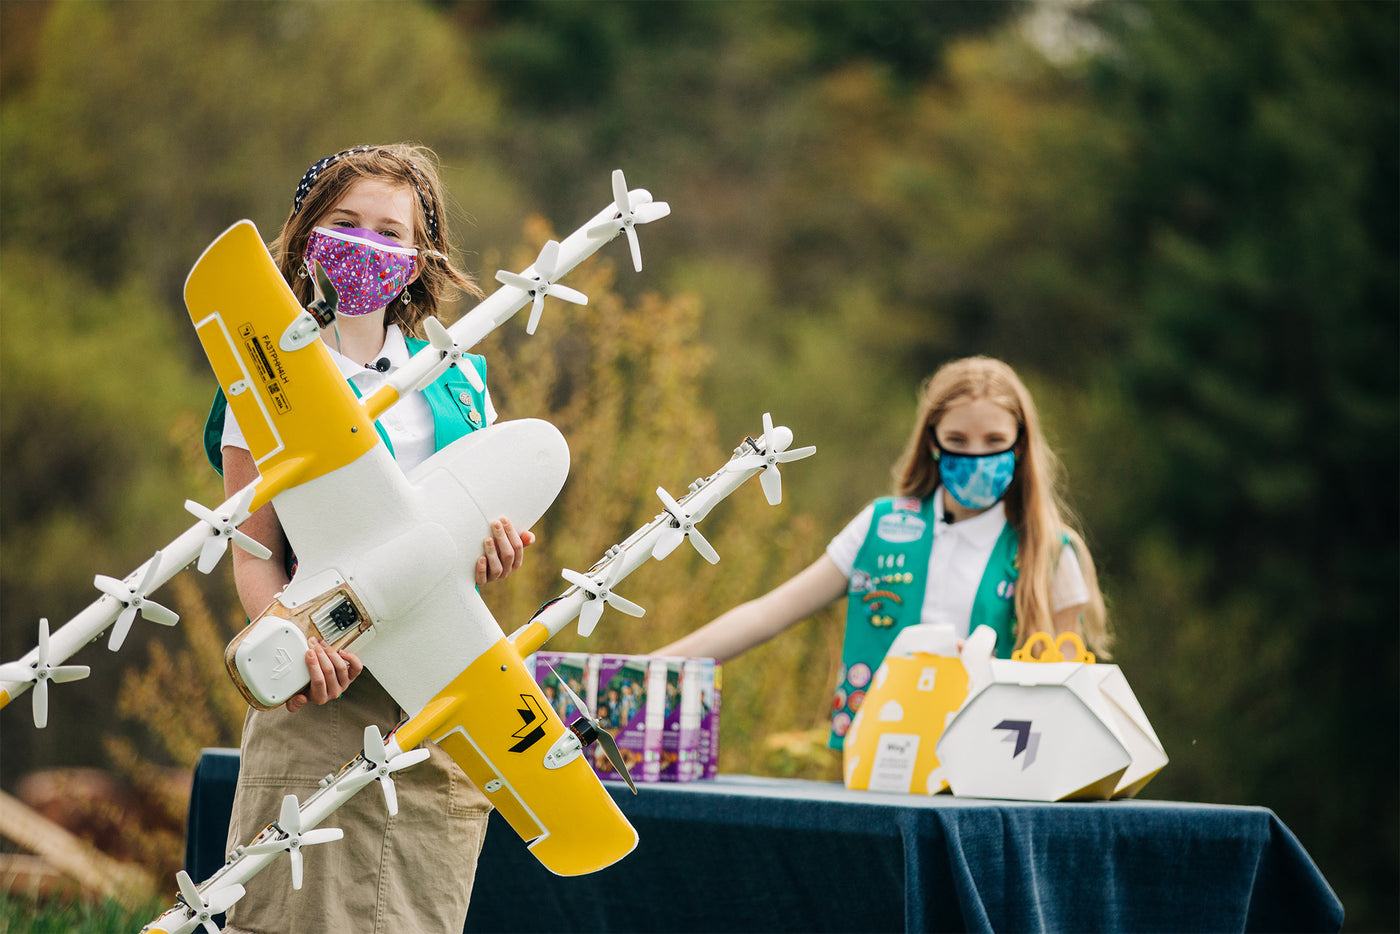 Wing's 14-propeller, drone begun dropping boxes of Girl Scout cookies in Virginia.